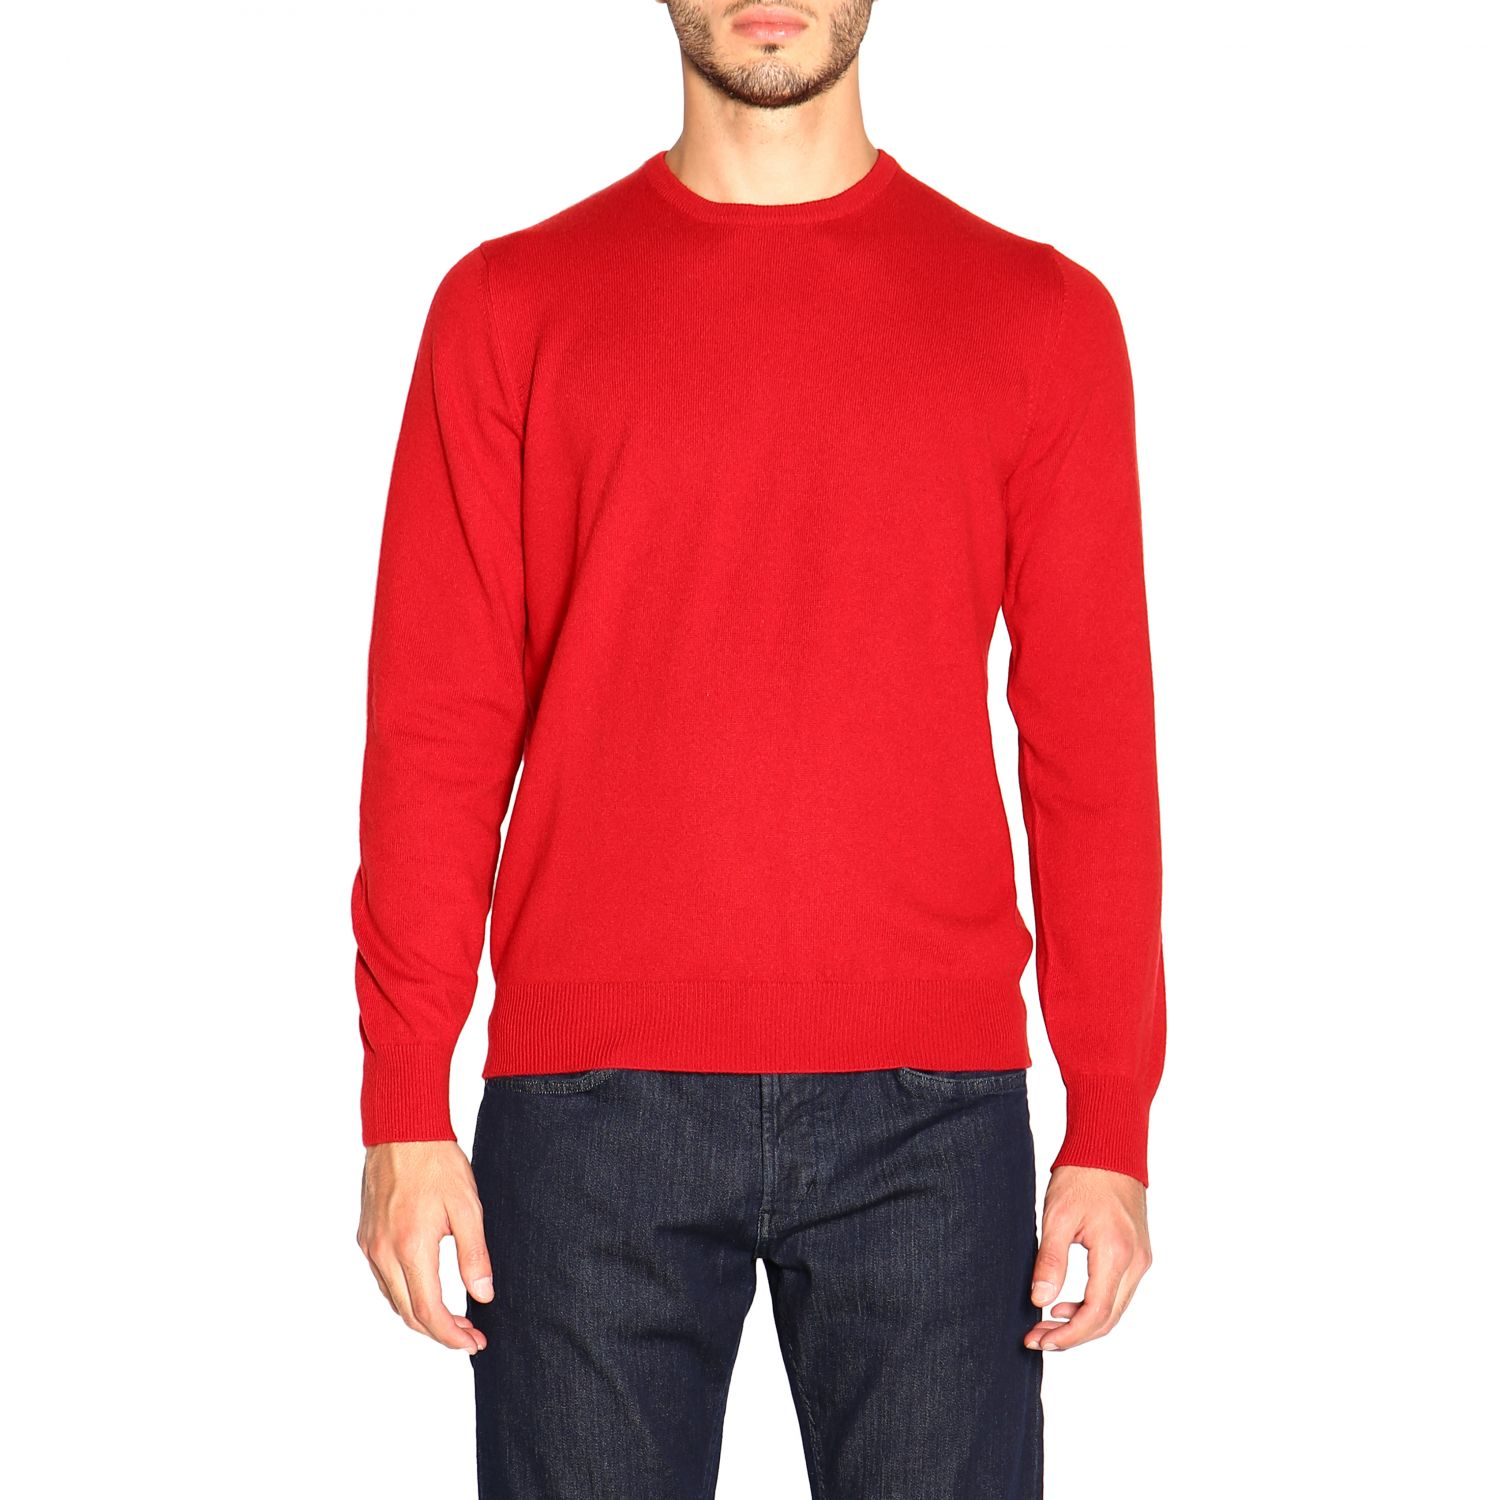 Sweater Barba Napoli: Sweater men Barba Napoli red 1